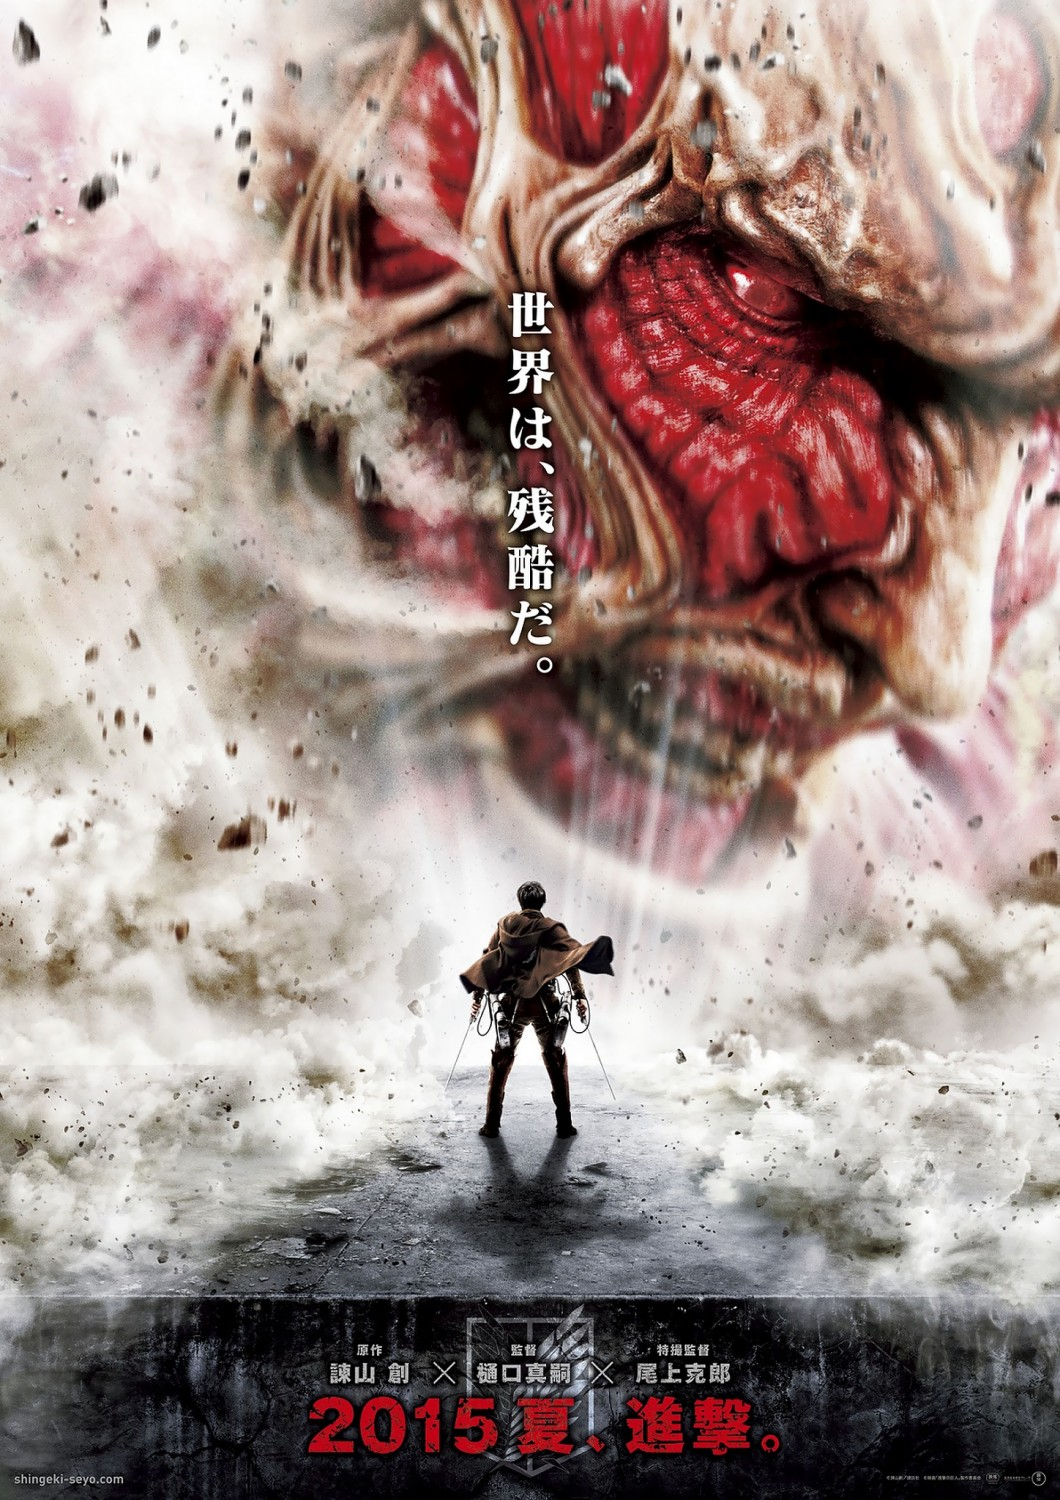 Attack on Titan movie poster featuring Haruma Miura and the Colossus titan.